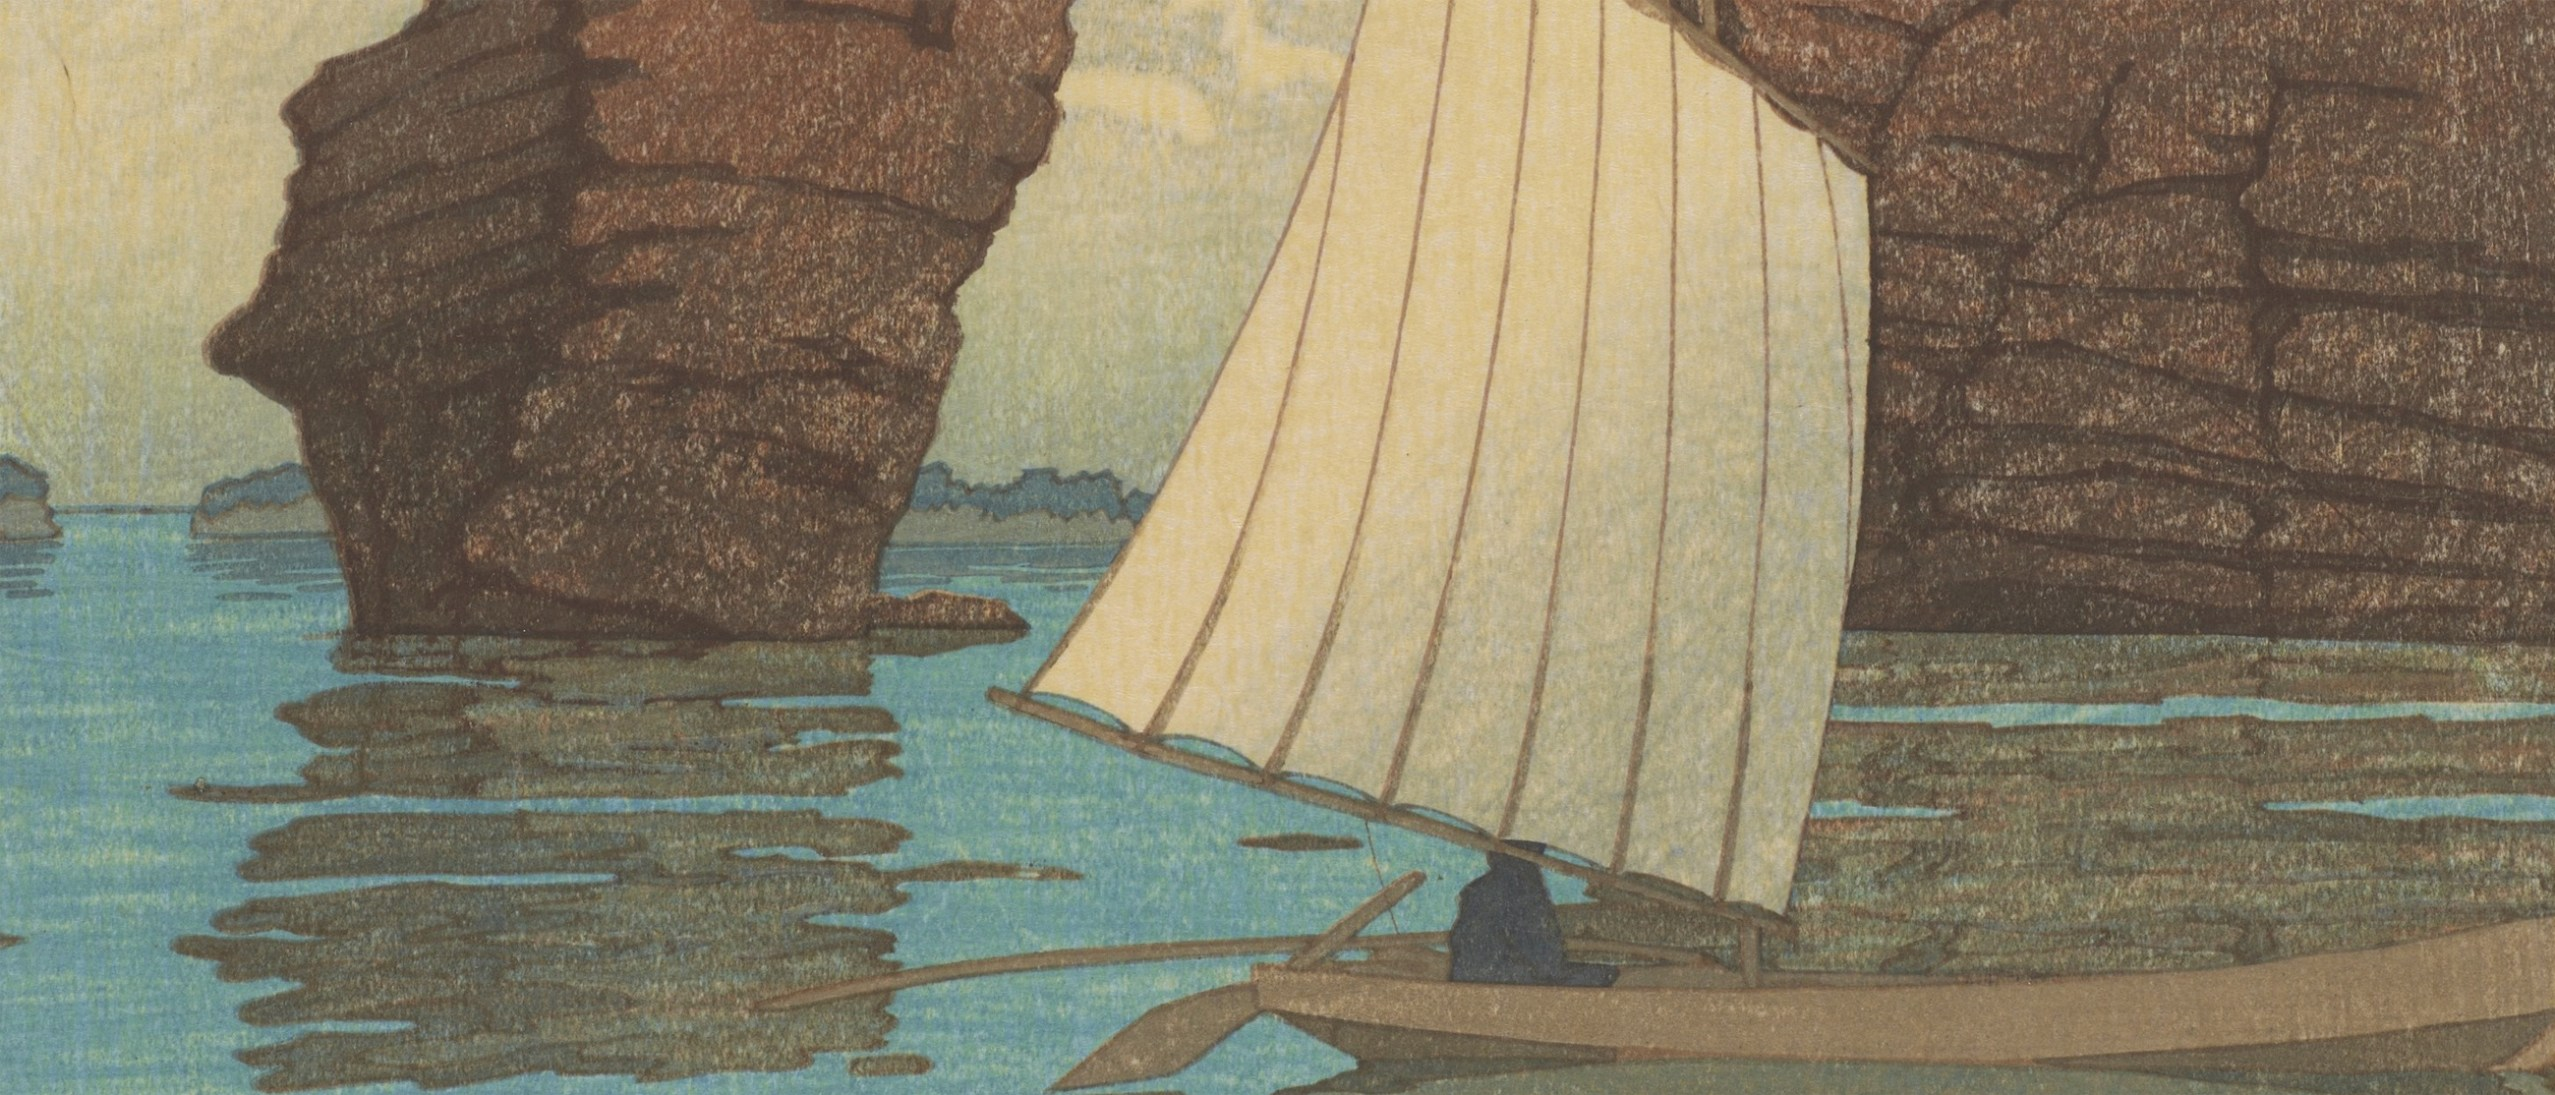 Detail image, Zaimoku Island, Matsushima; Kawase Hasui (1883–1957); From the series Collection of Scenic Views of Japan, Eastern Japan edition; Japan, May 1933; Woodblock print; ink and color on paper; Arthur M. Sackler Gallery, Robert O. Muller Collection S2003.8.796